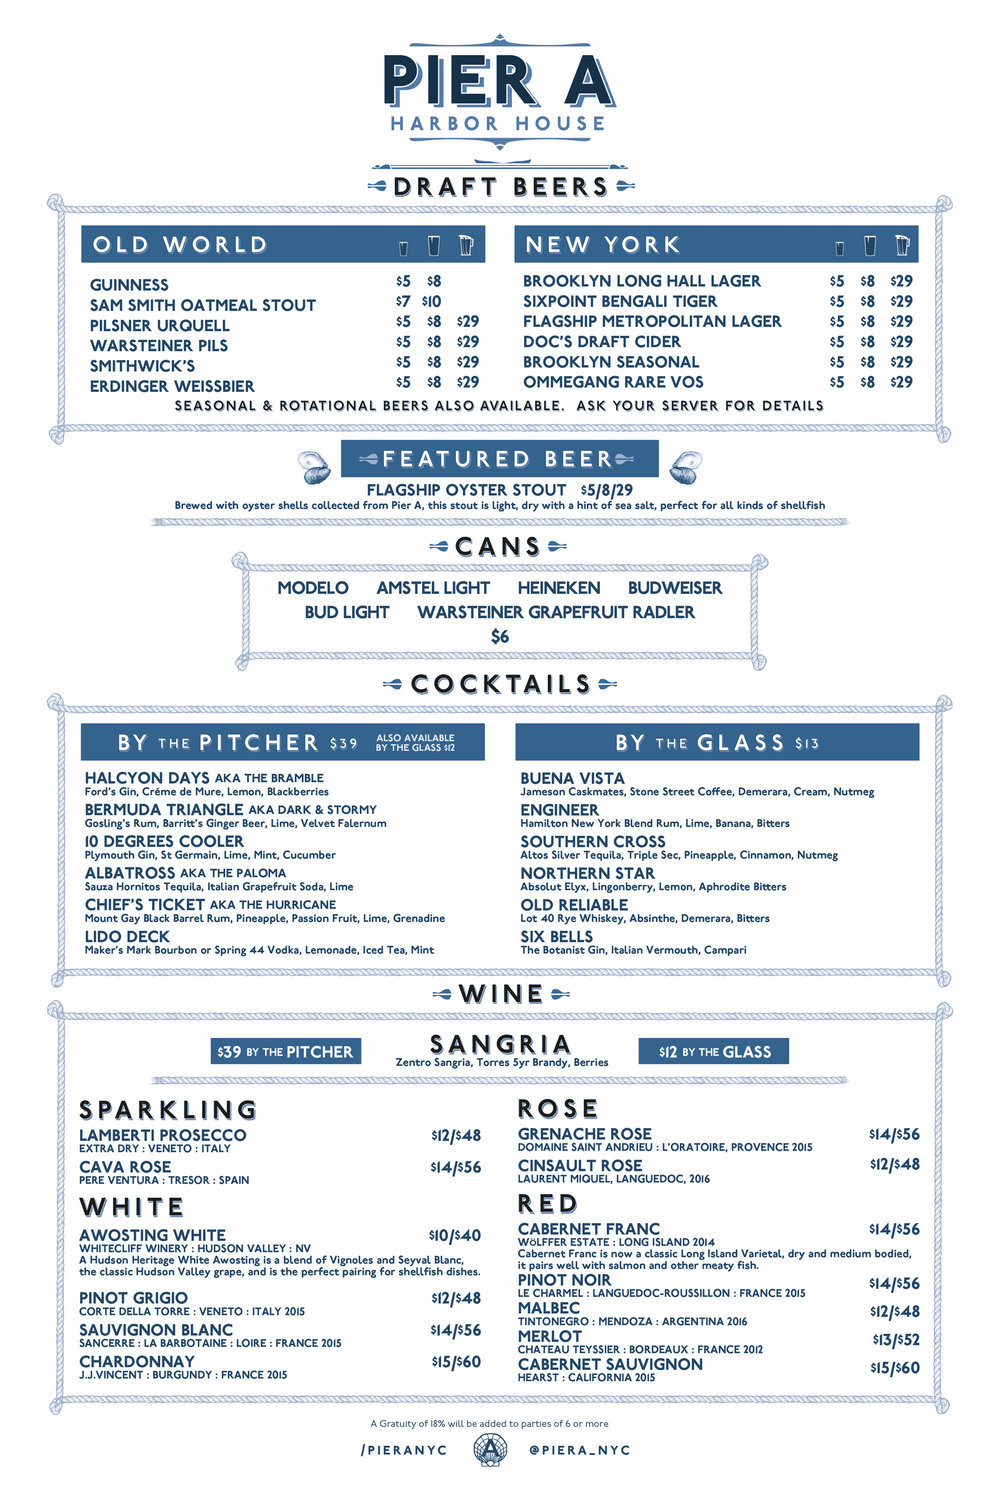 Pier-A-Long-Hall-Menu-10x15-no-bleed-2017.jpg